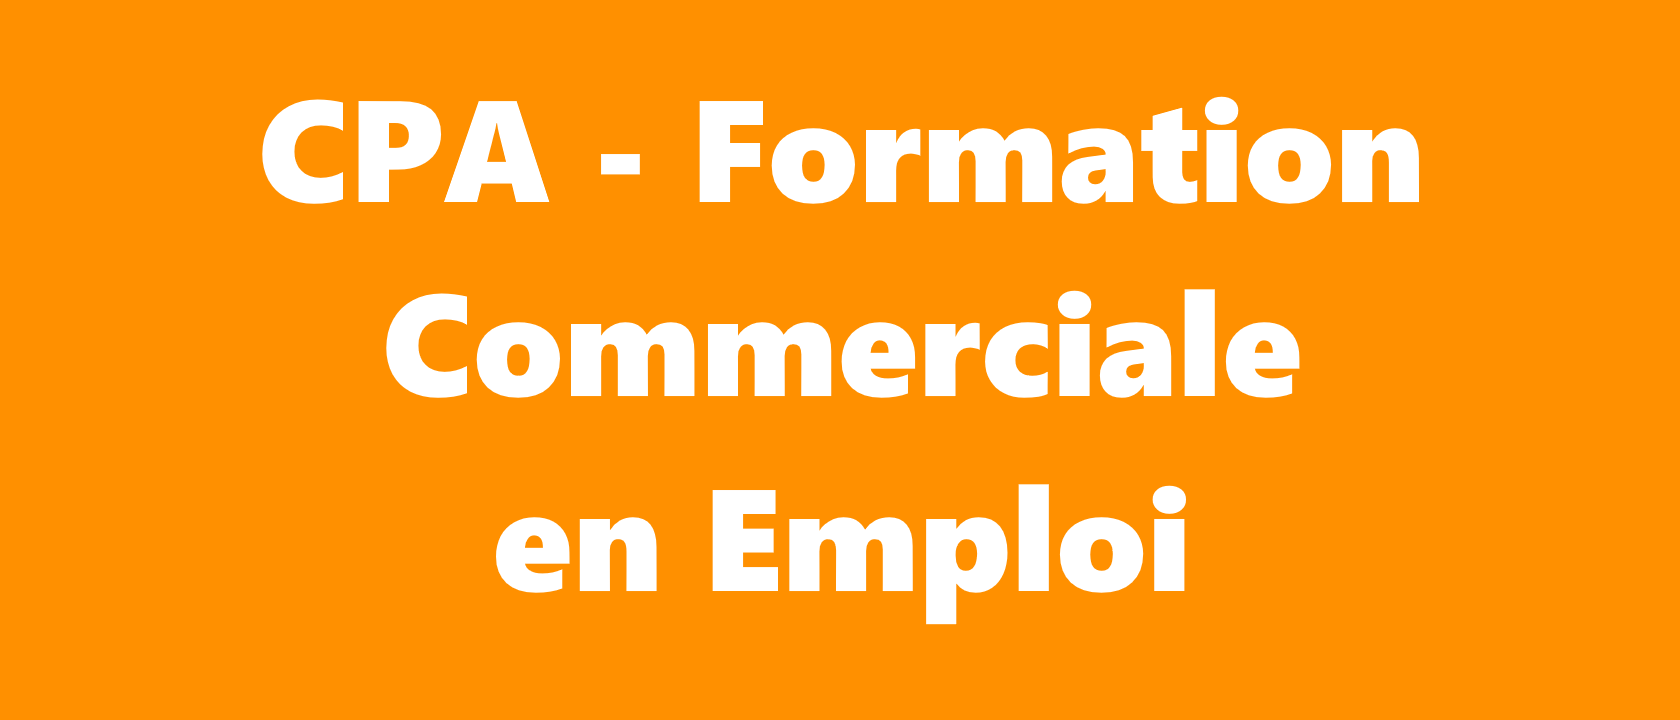 Permalink to:CPA – Formation Commerciale en Emploi